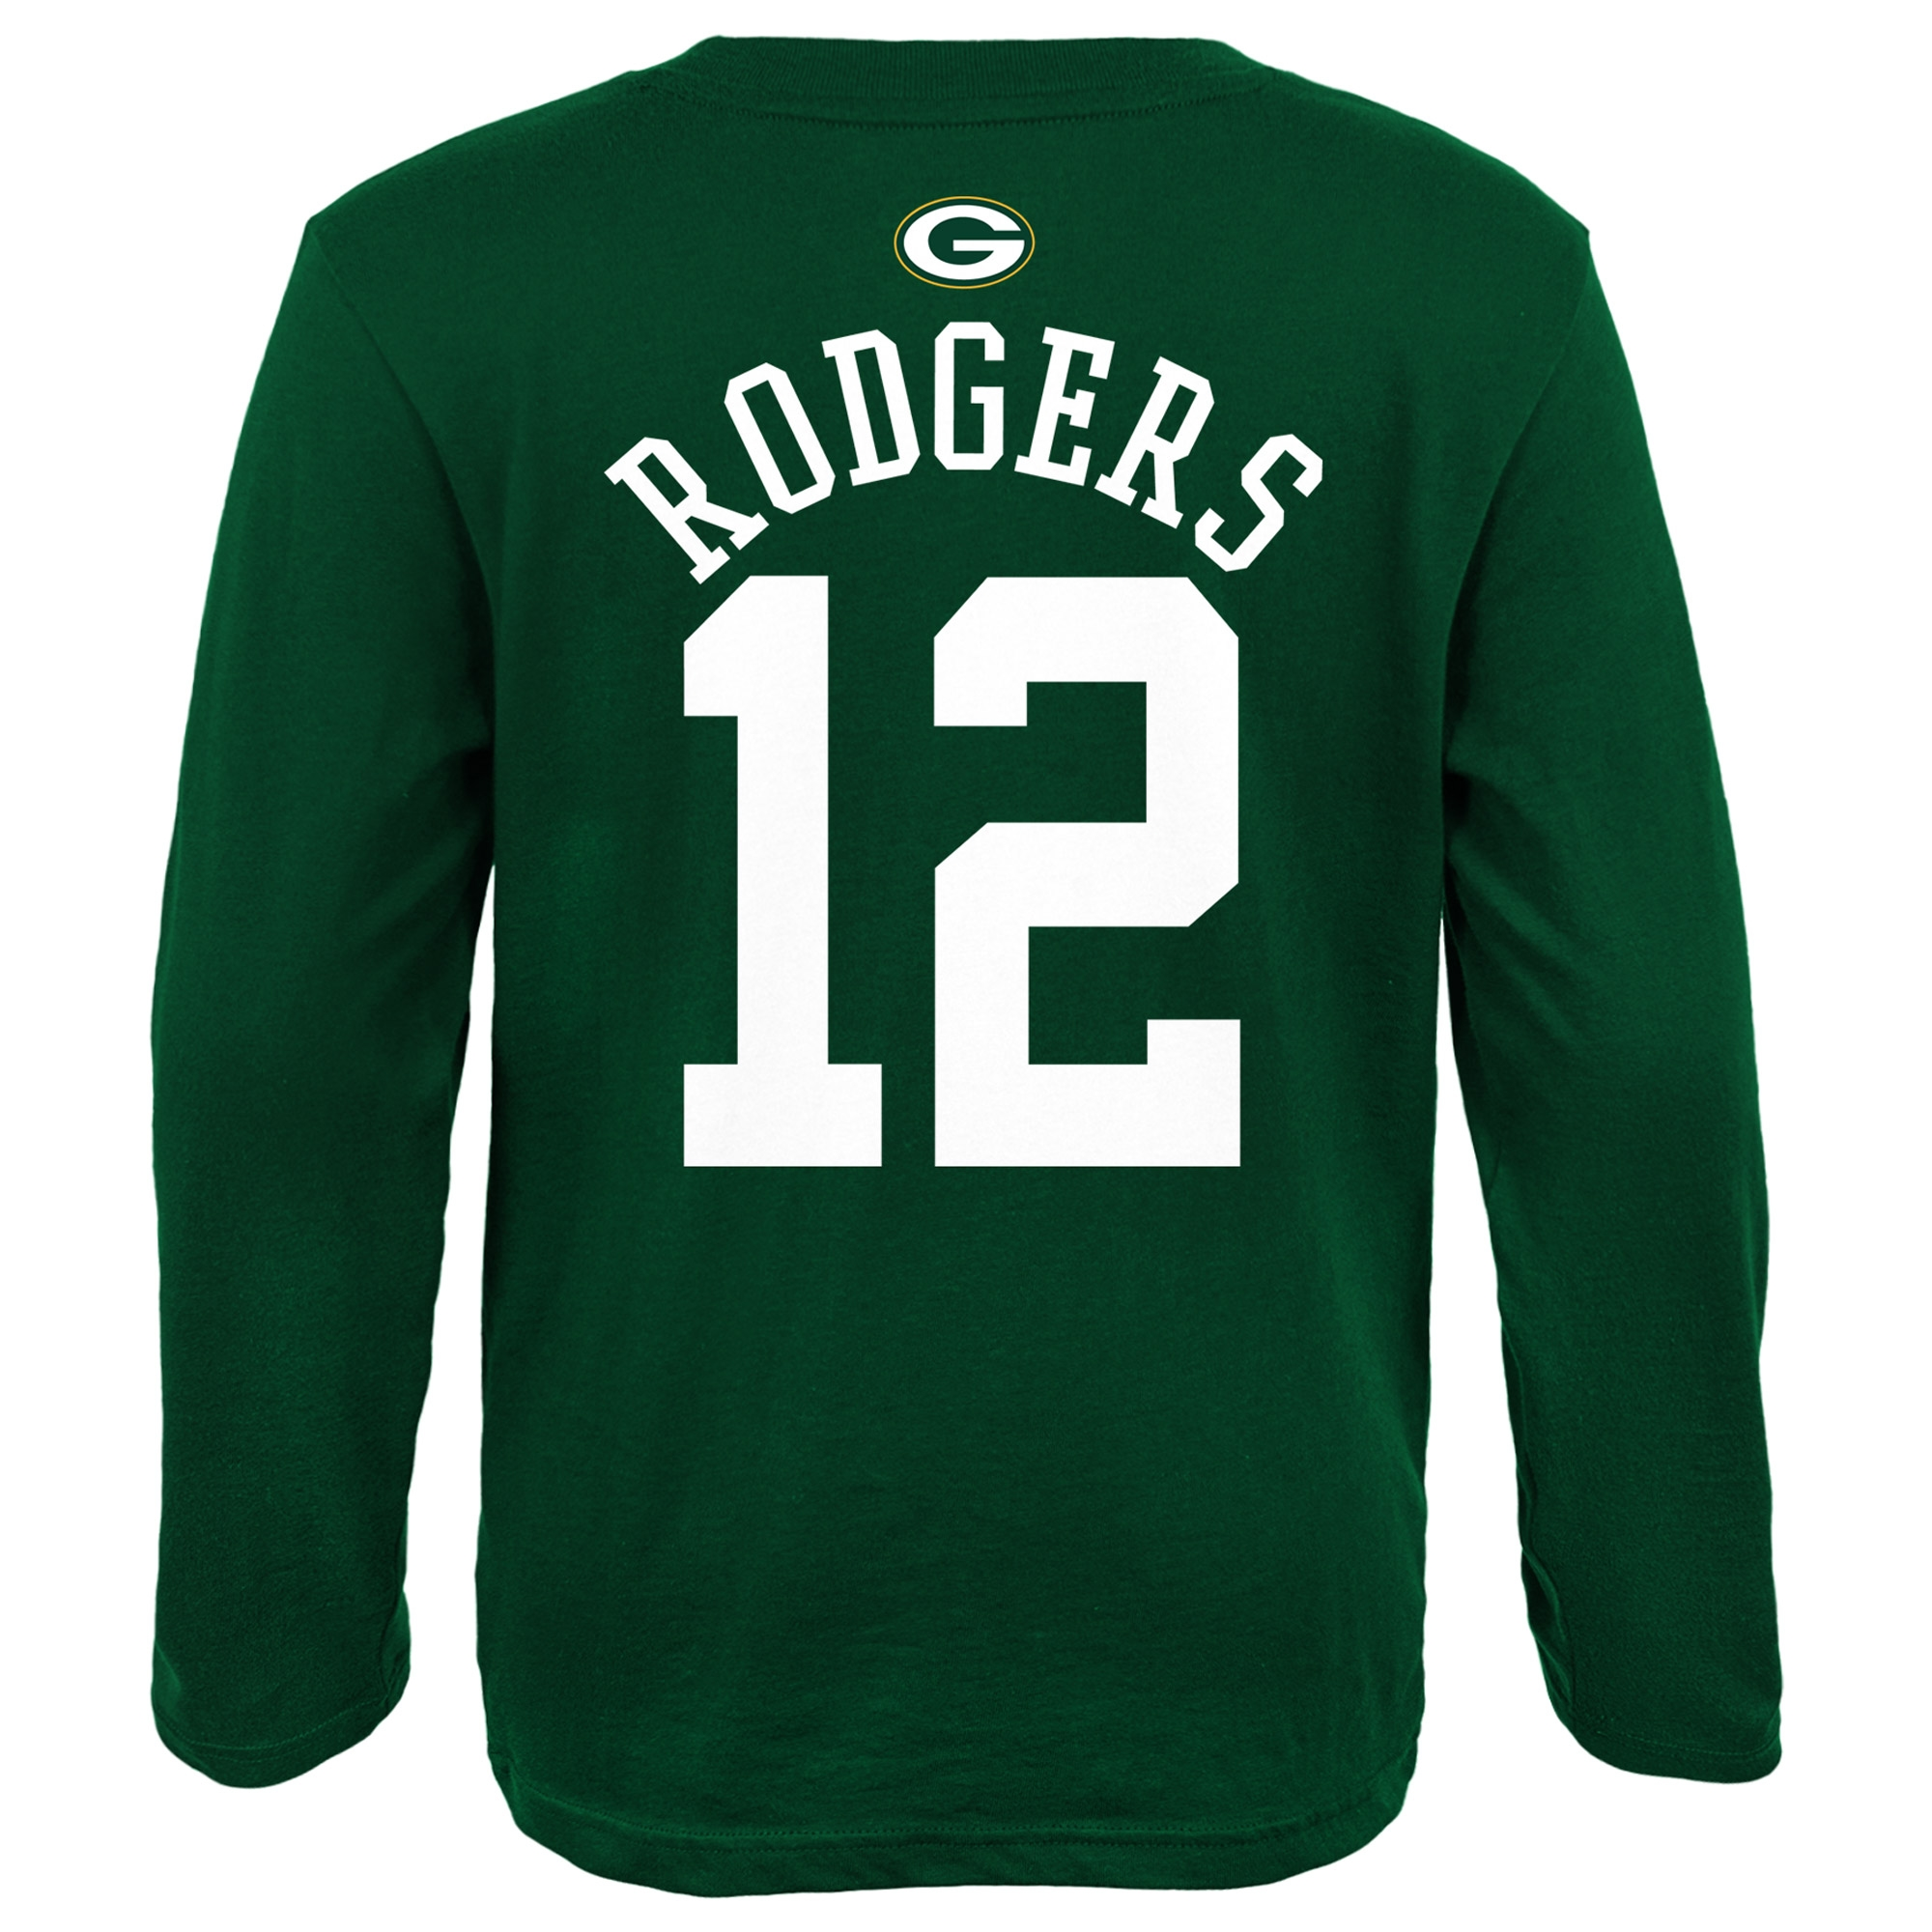 4a3f64e6 Aaron Rodgers Green Bay Packers Youth Primary Gear Name & Number Long  Sleeve T-Shirt - Green - Walmart.com